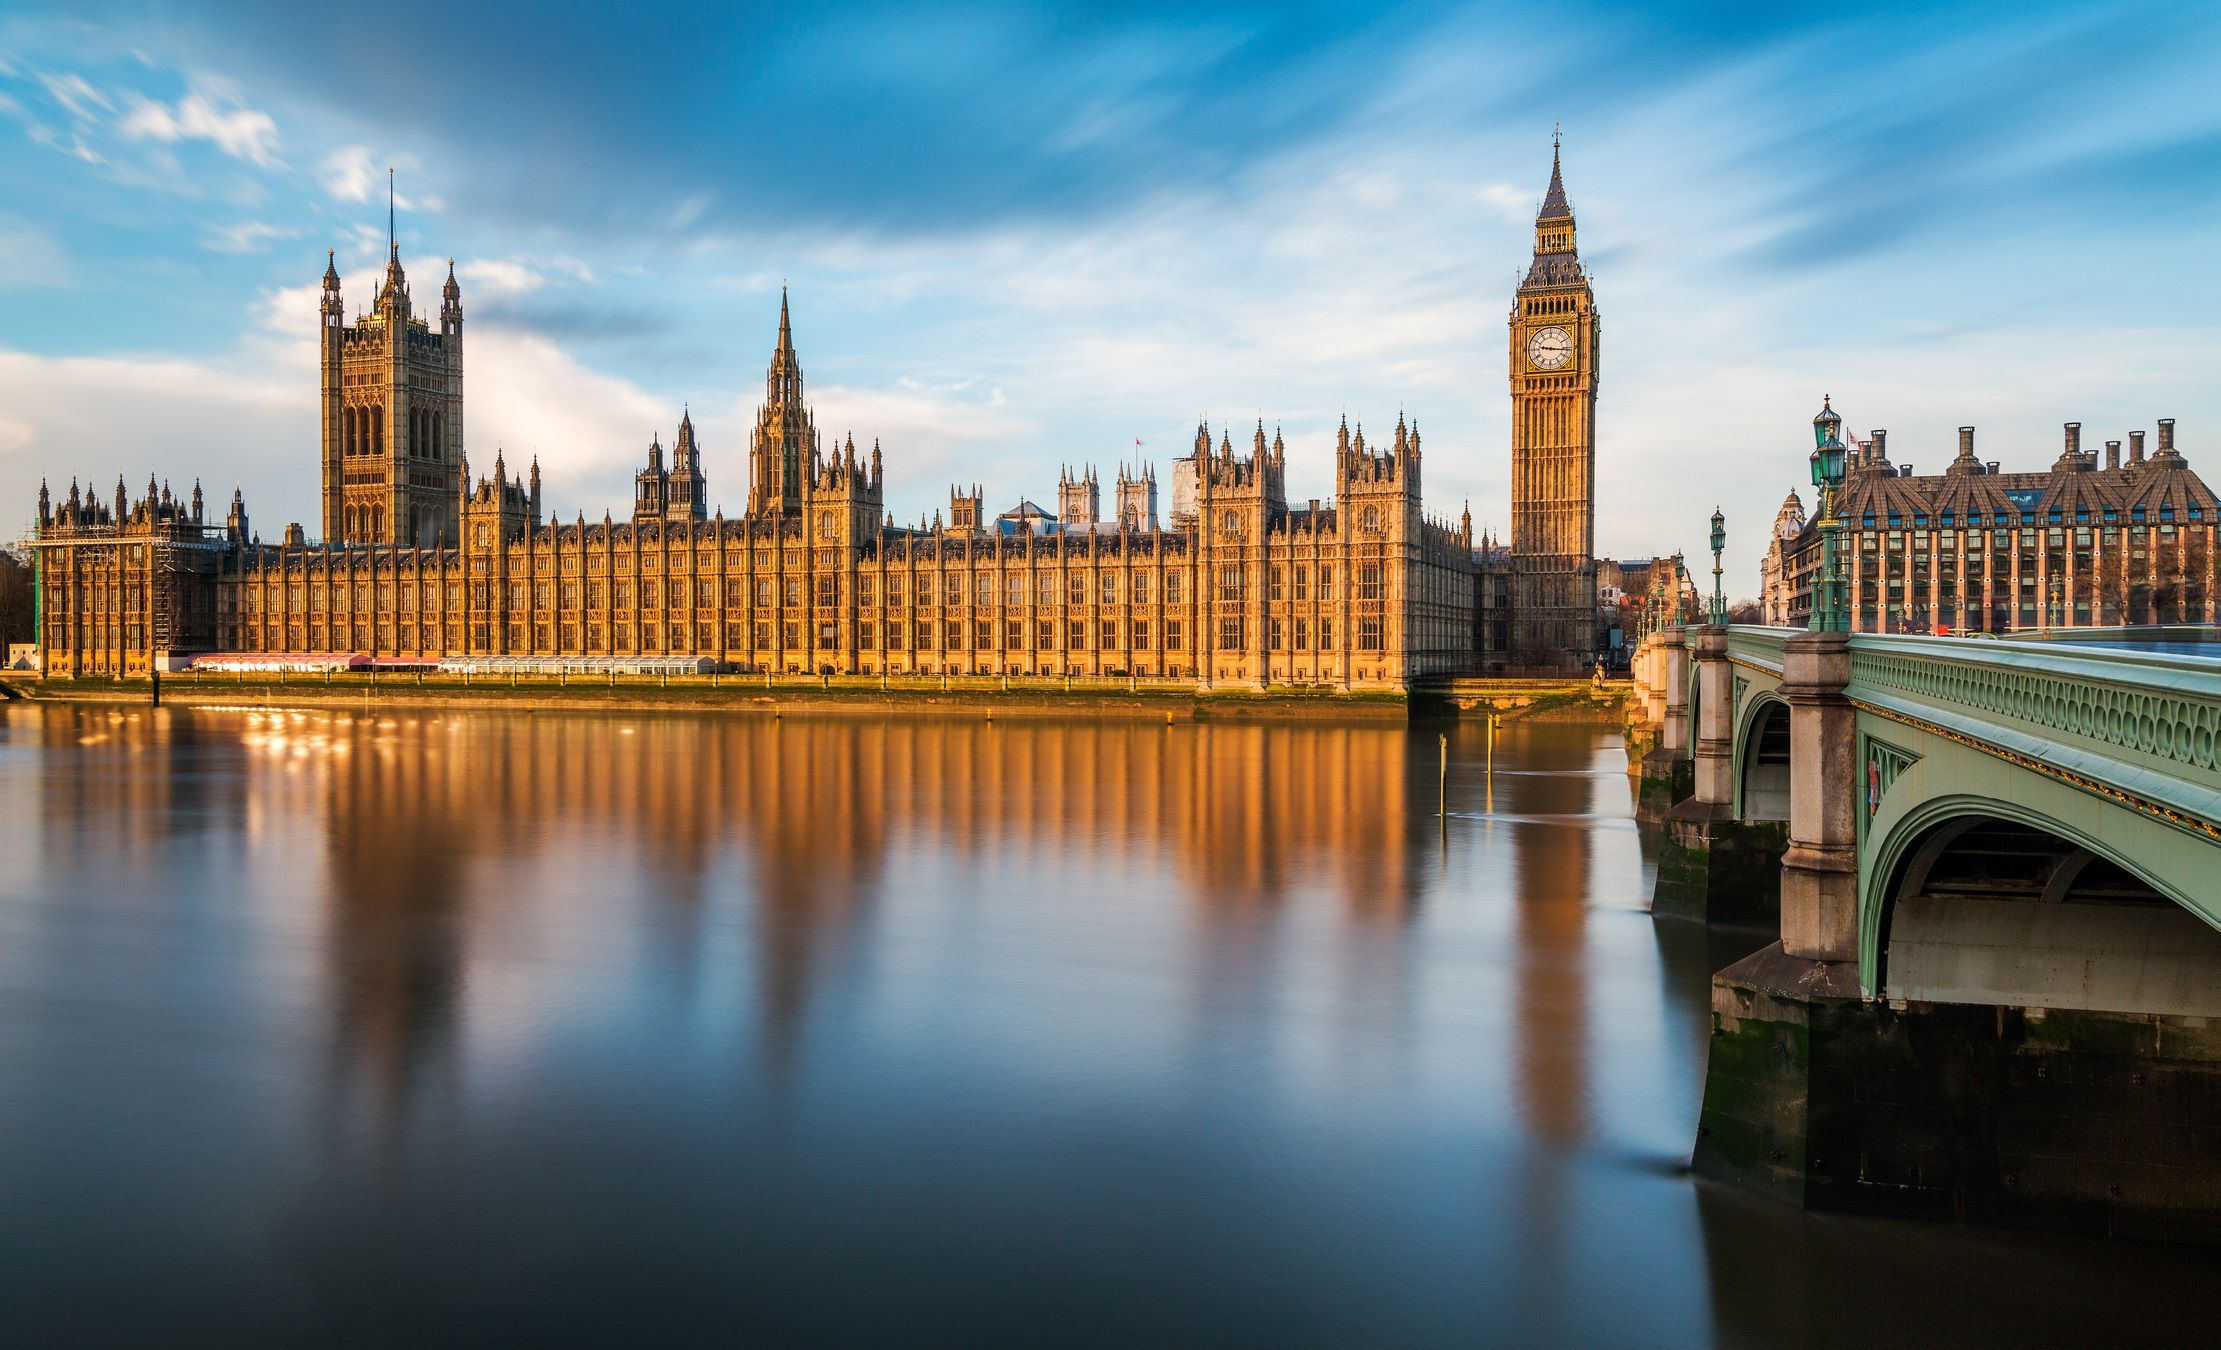 Visiting London's Houses of Parliament